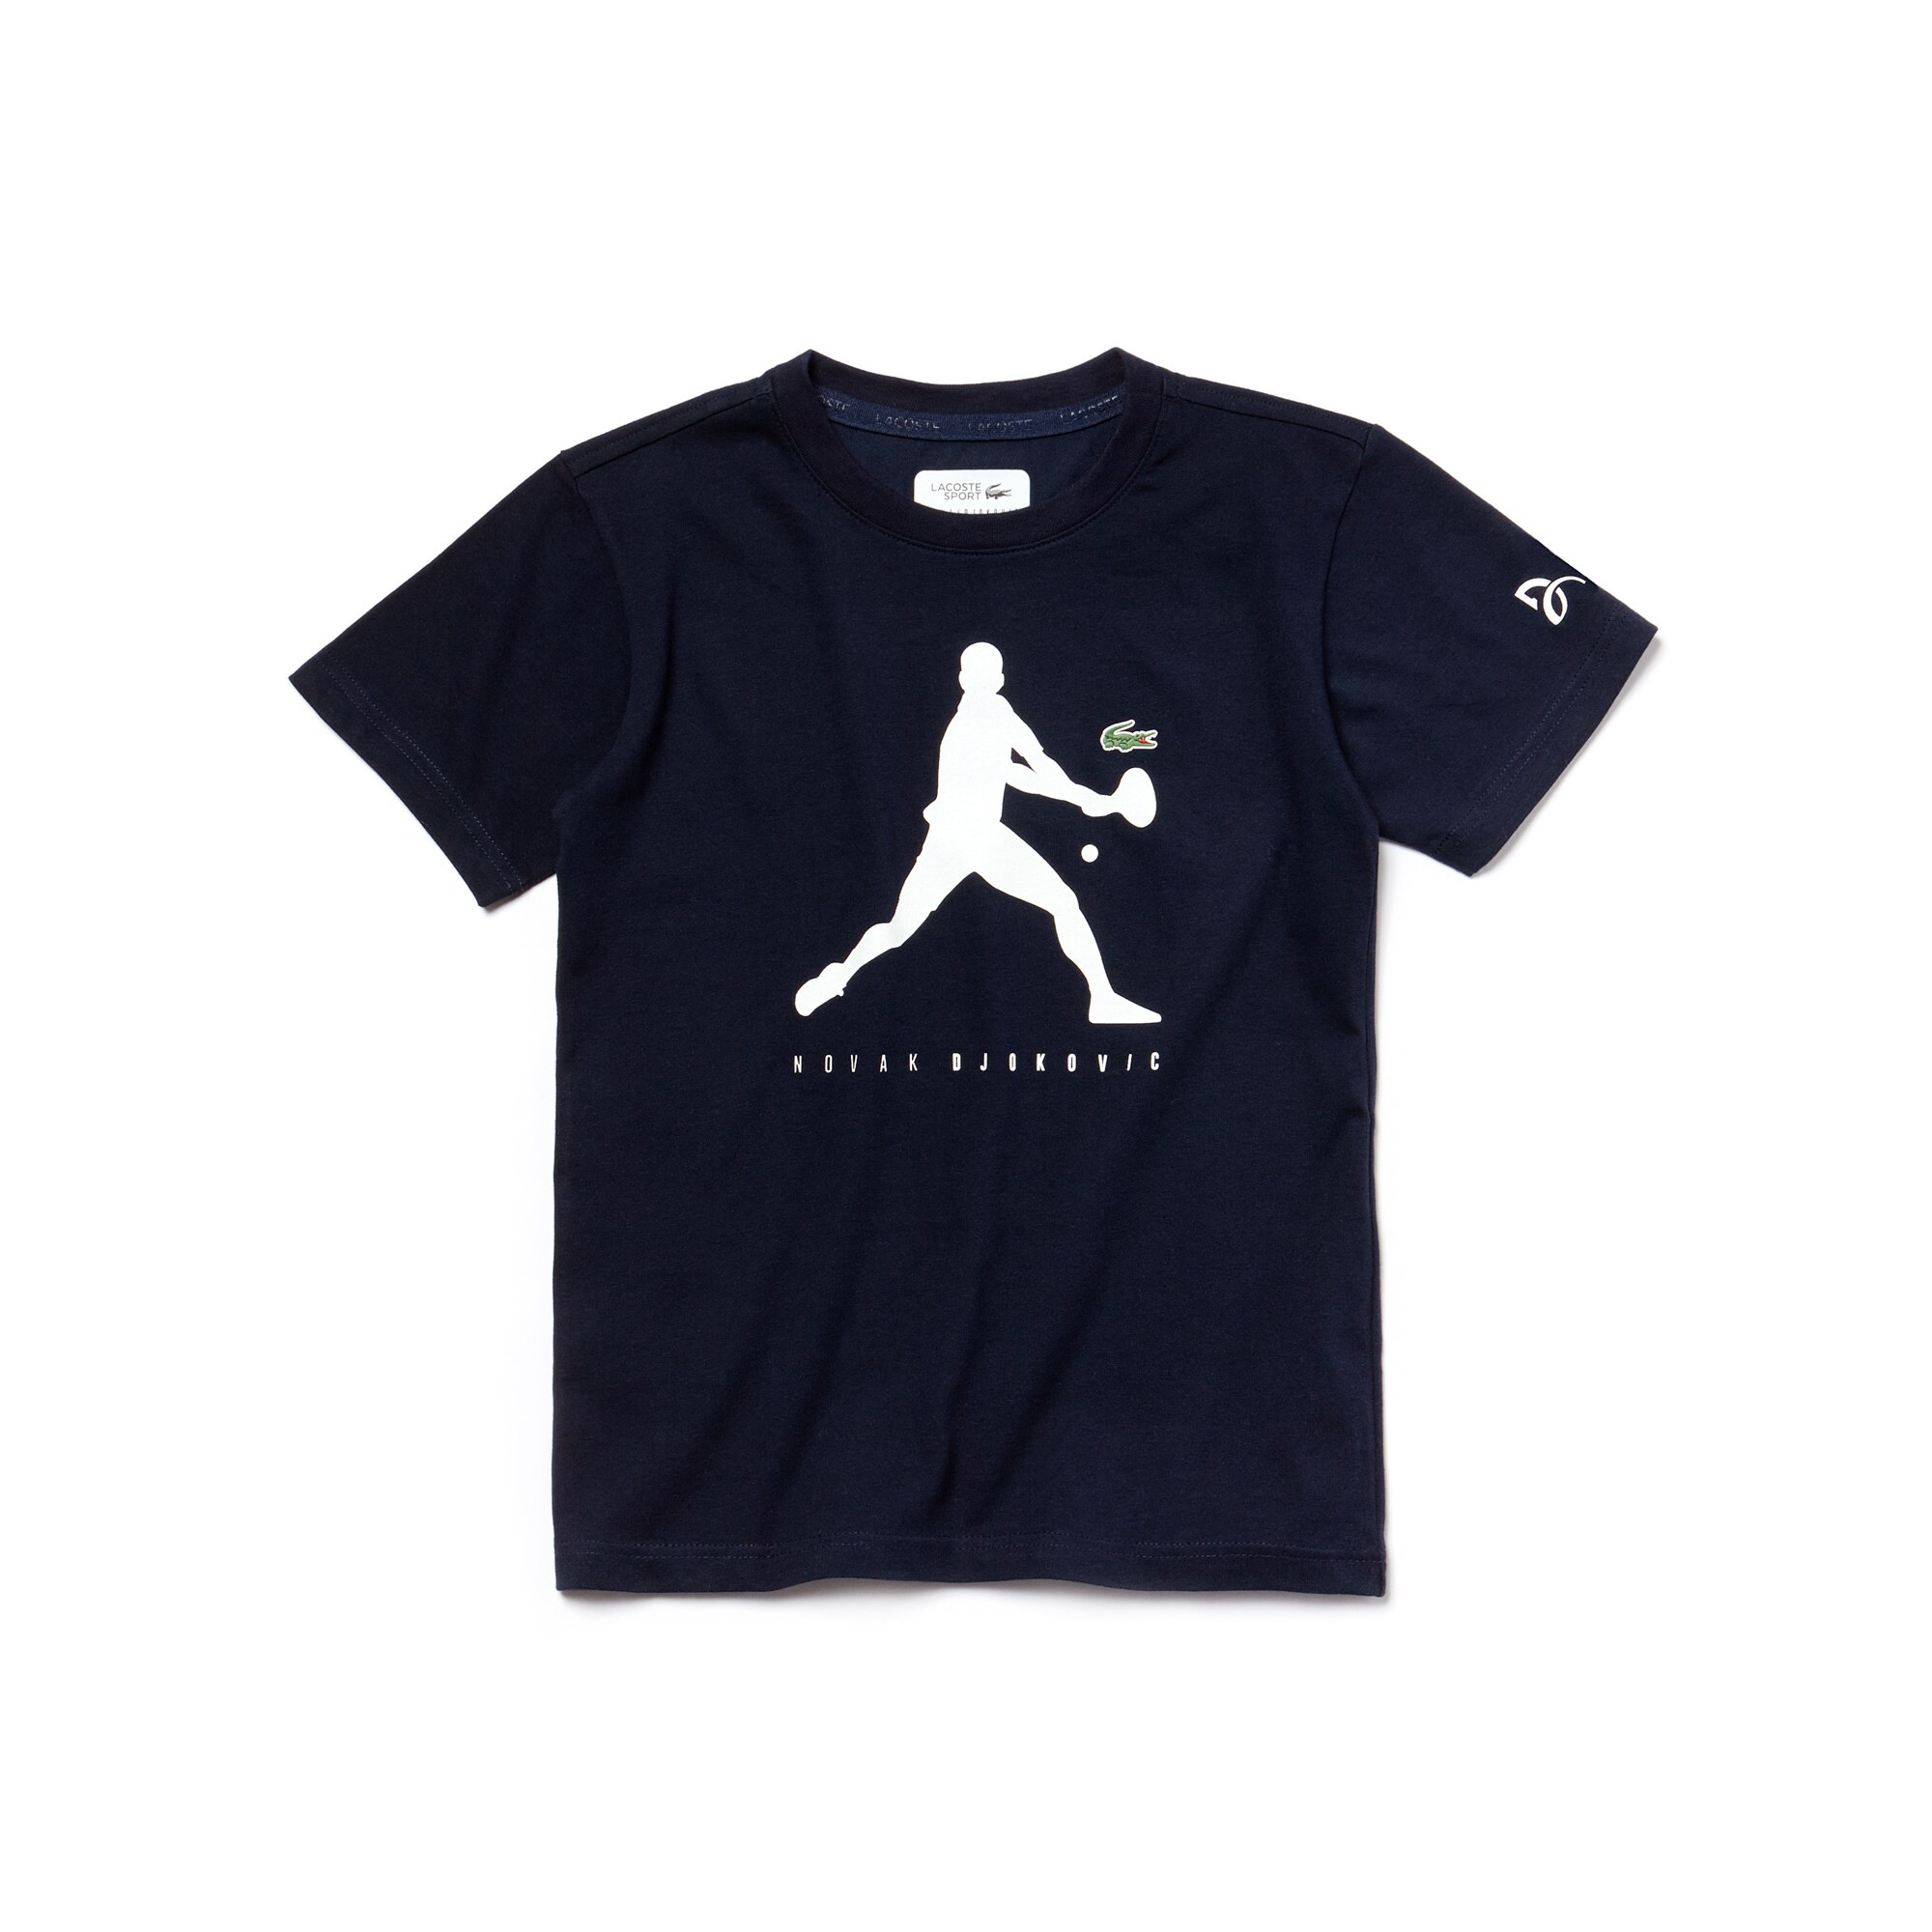 T-shirt Bambino Lacoste SPORT COLLEZIONE NOVAK DJOKOVIC SUPPORT WITH STYLE in jersey tecnico